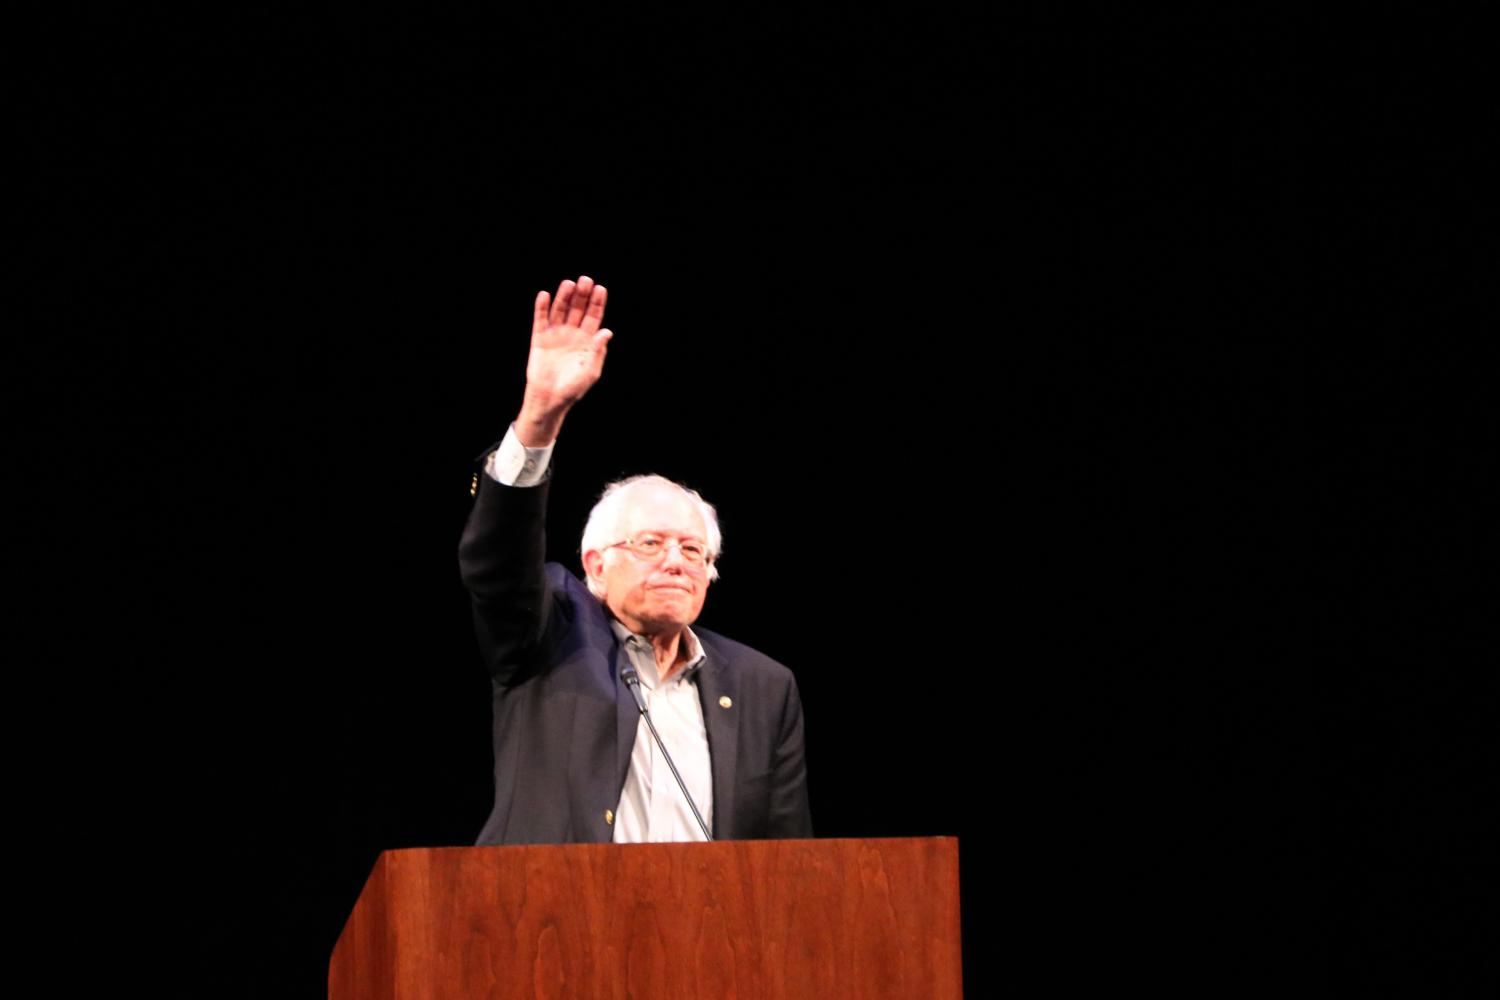 Bernie+Sanders+addresses+the+crowd+at+his+event+in+Iowa+City+Thursday+night.+Sanders+was+promoting+his+recent+book.